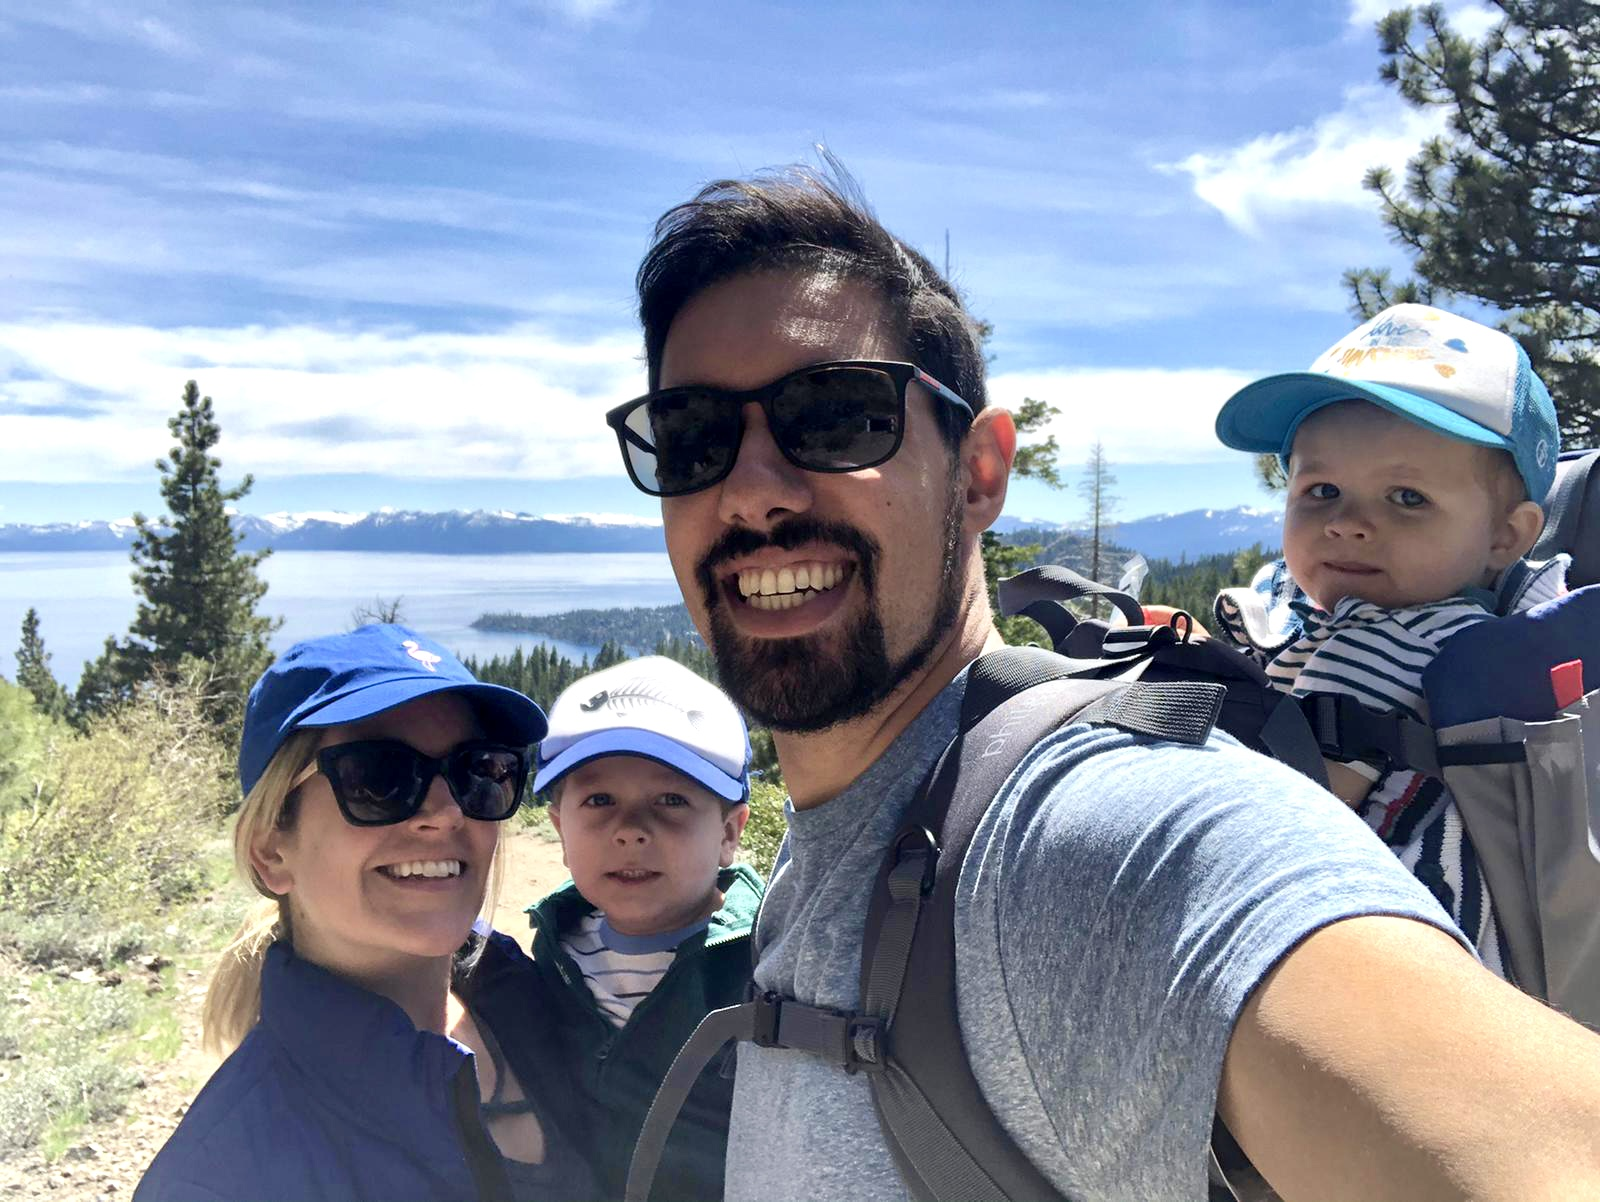 Featured image showing Karim Mekhid, his wife and two children in front of Lake Tahoe